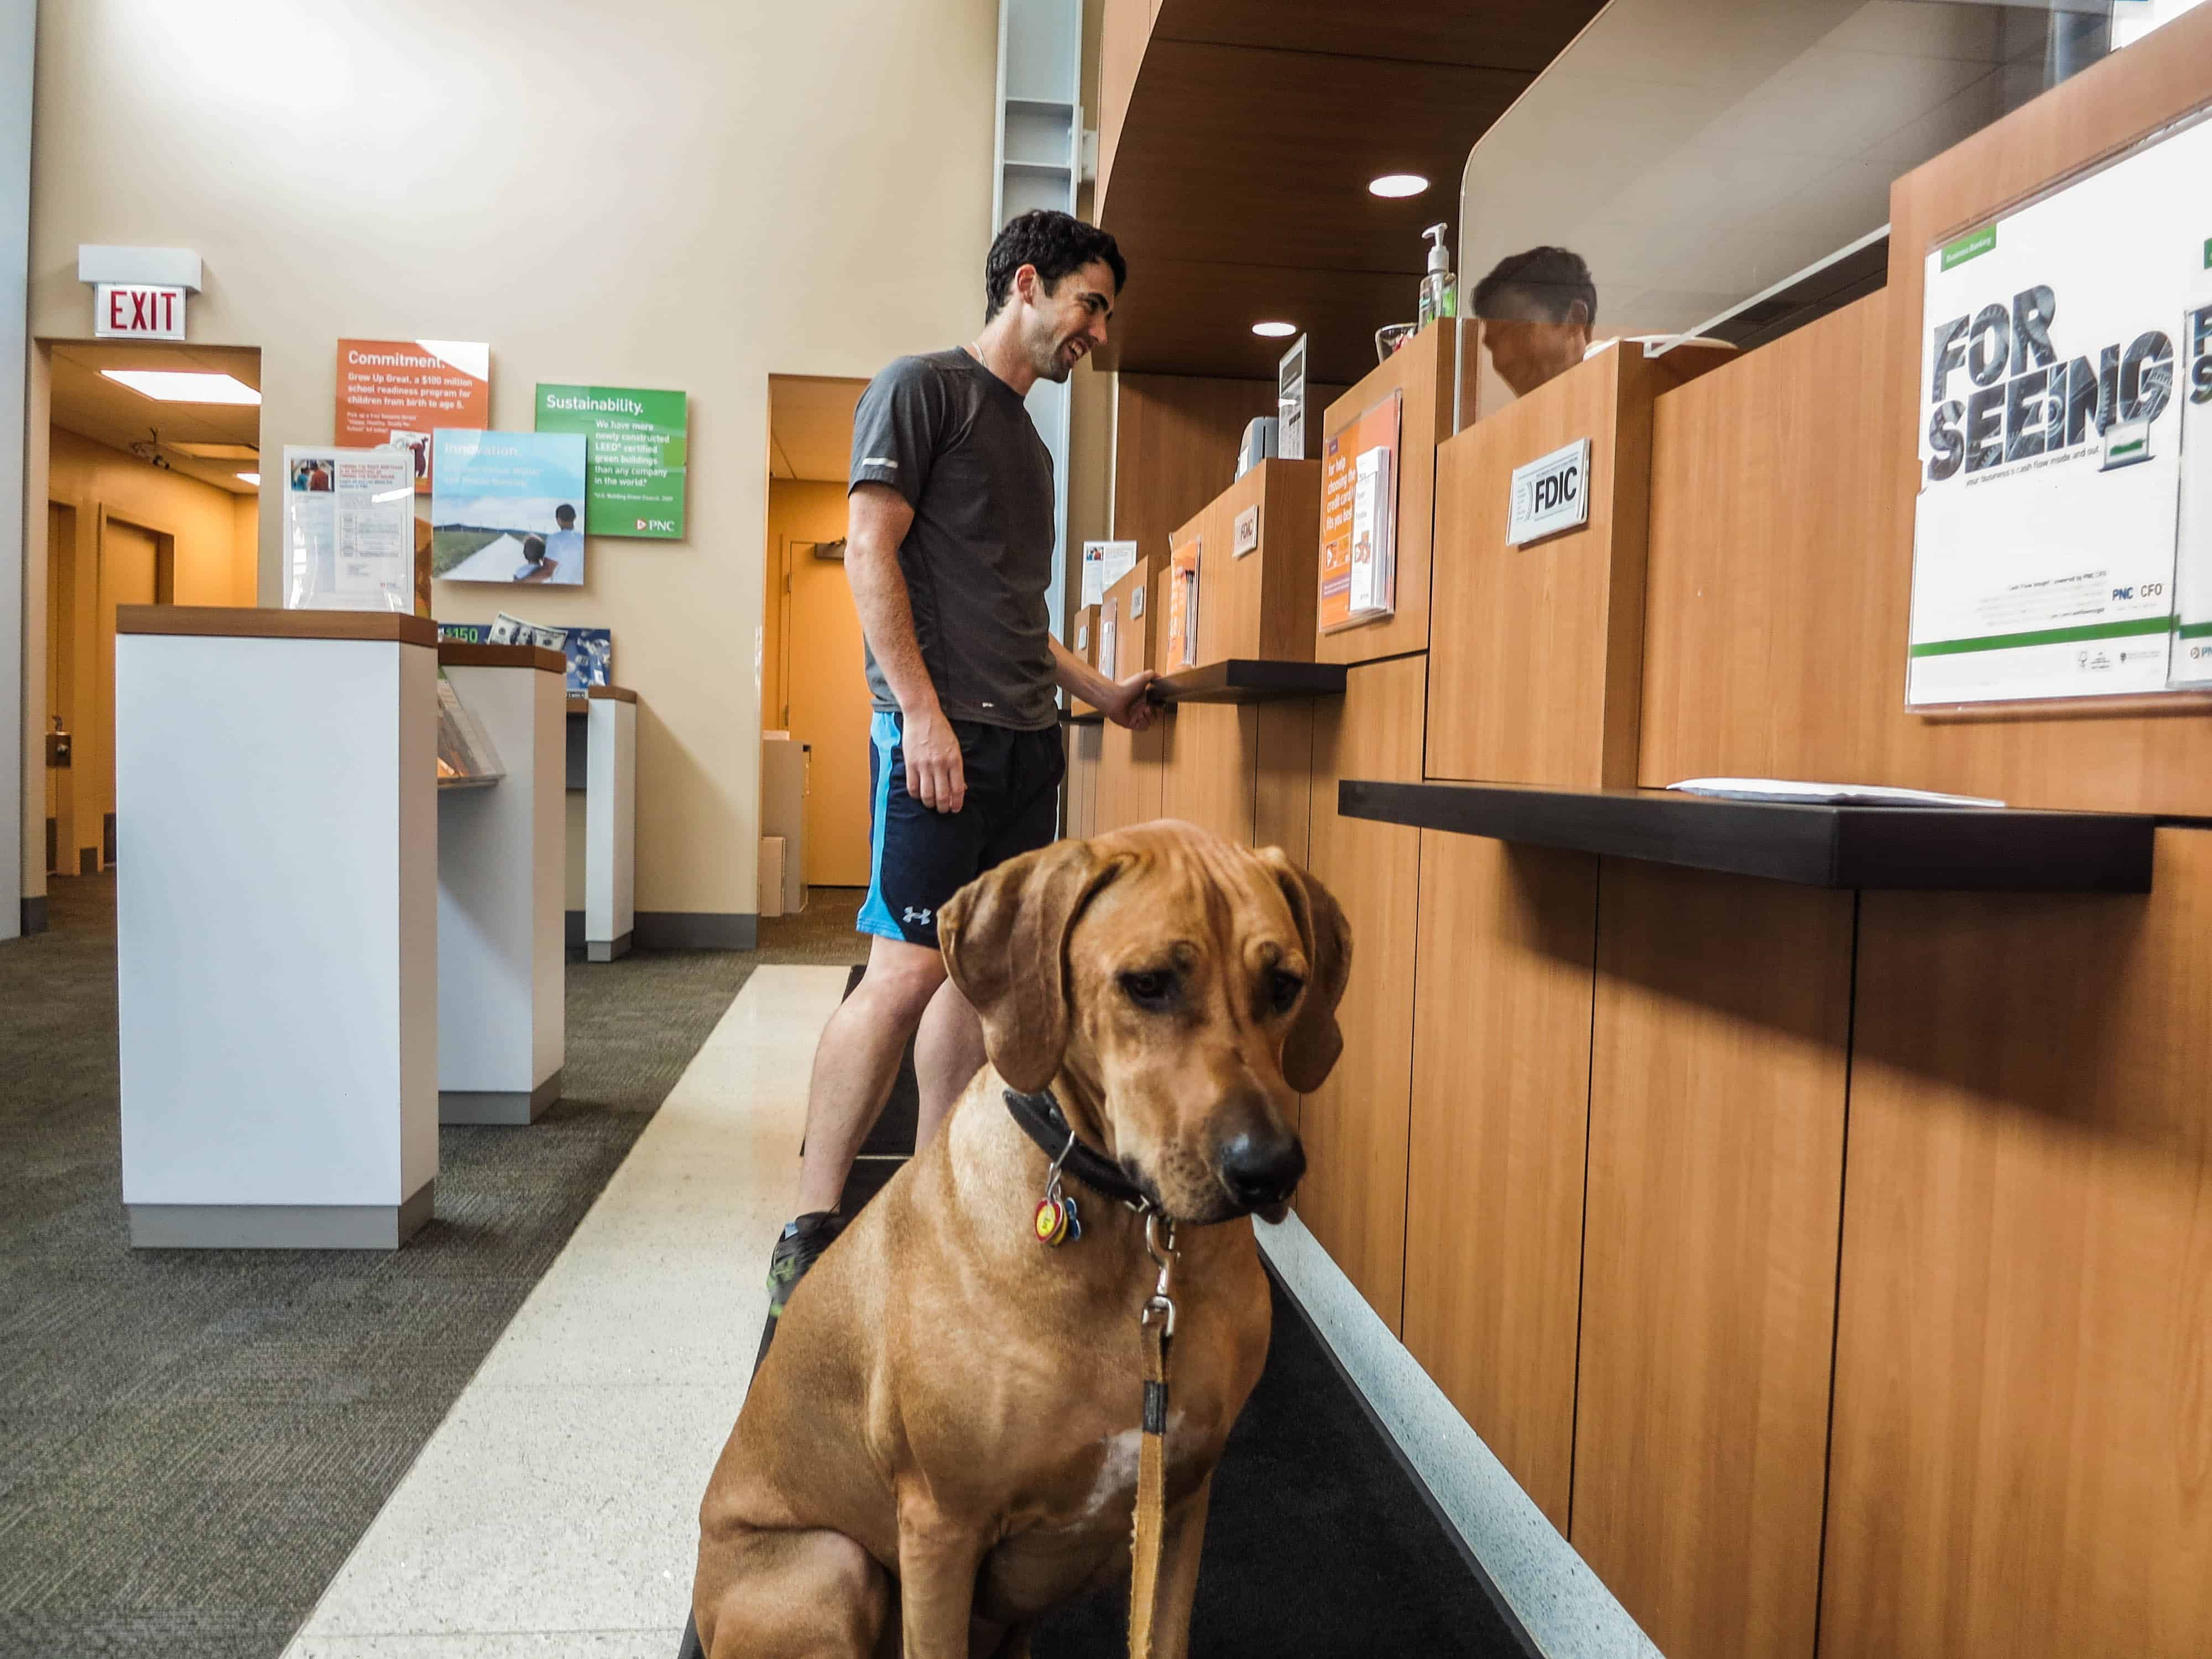 Rhodesian Ridgeback, adventure, dogs, marking our territory, petcentric